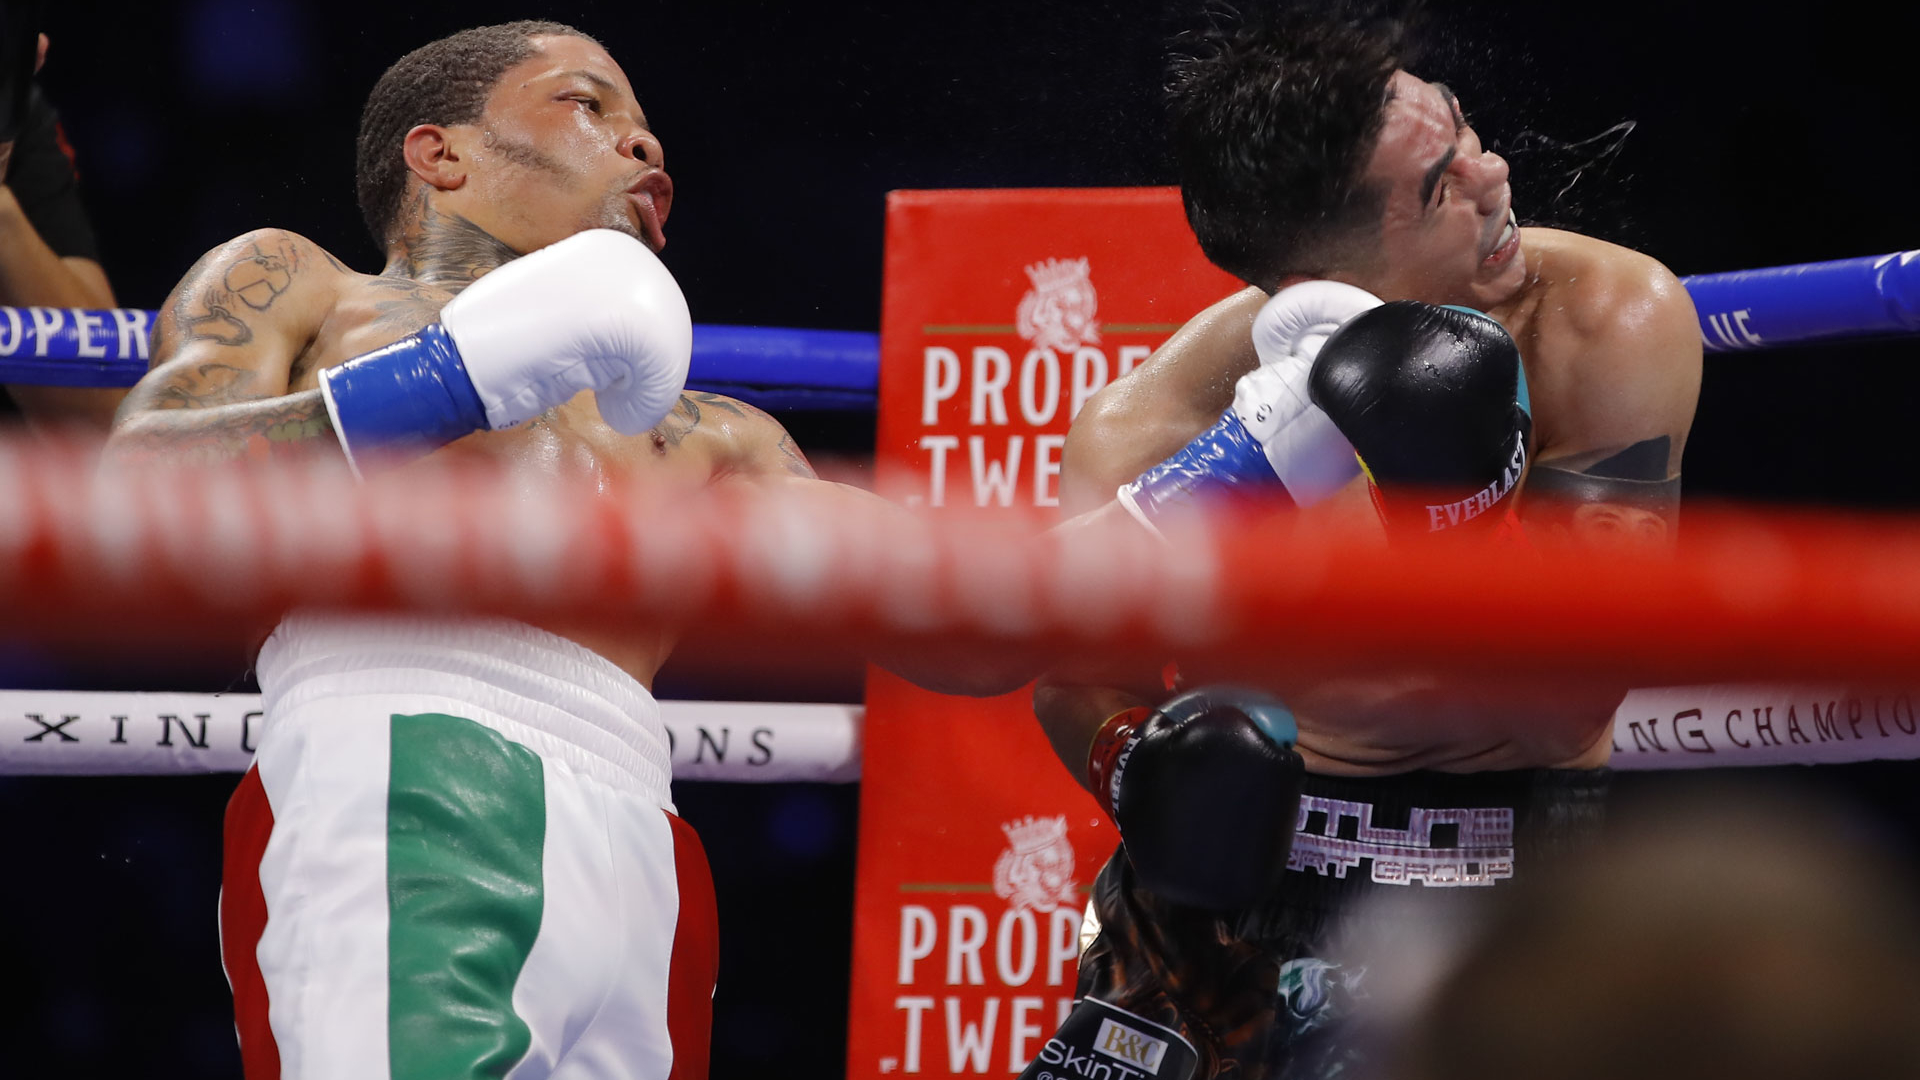 Gervonta Davis explosively knocks out Leo Santa Cruz with huge uppercut